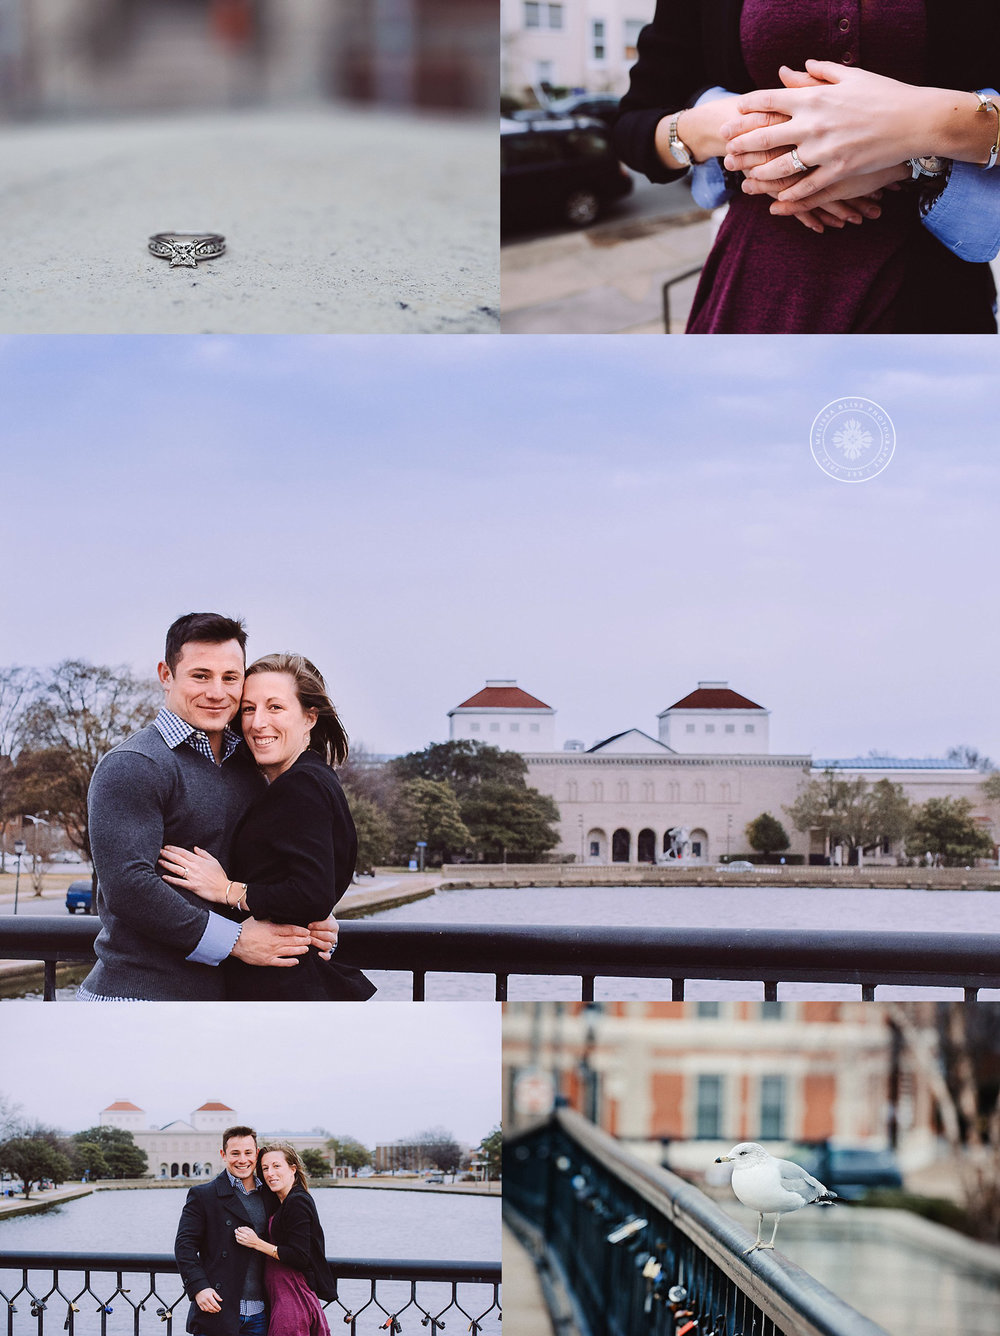 engagement-photography-session-norfolk-virginia-beach-engagement-photographers-chrysler-museum-of-norfolk-engagement-photos